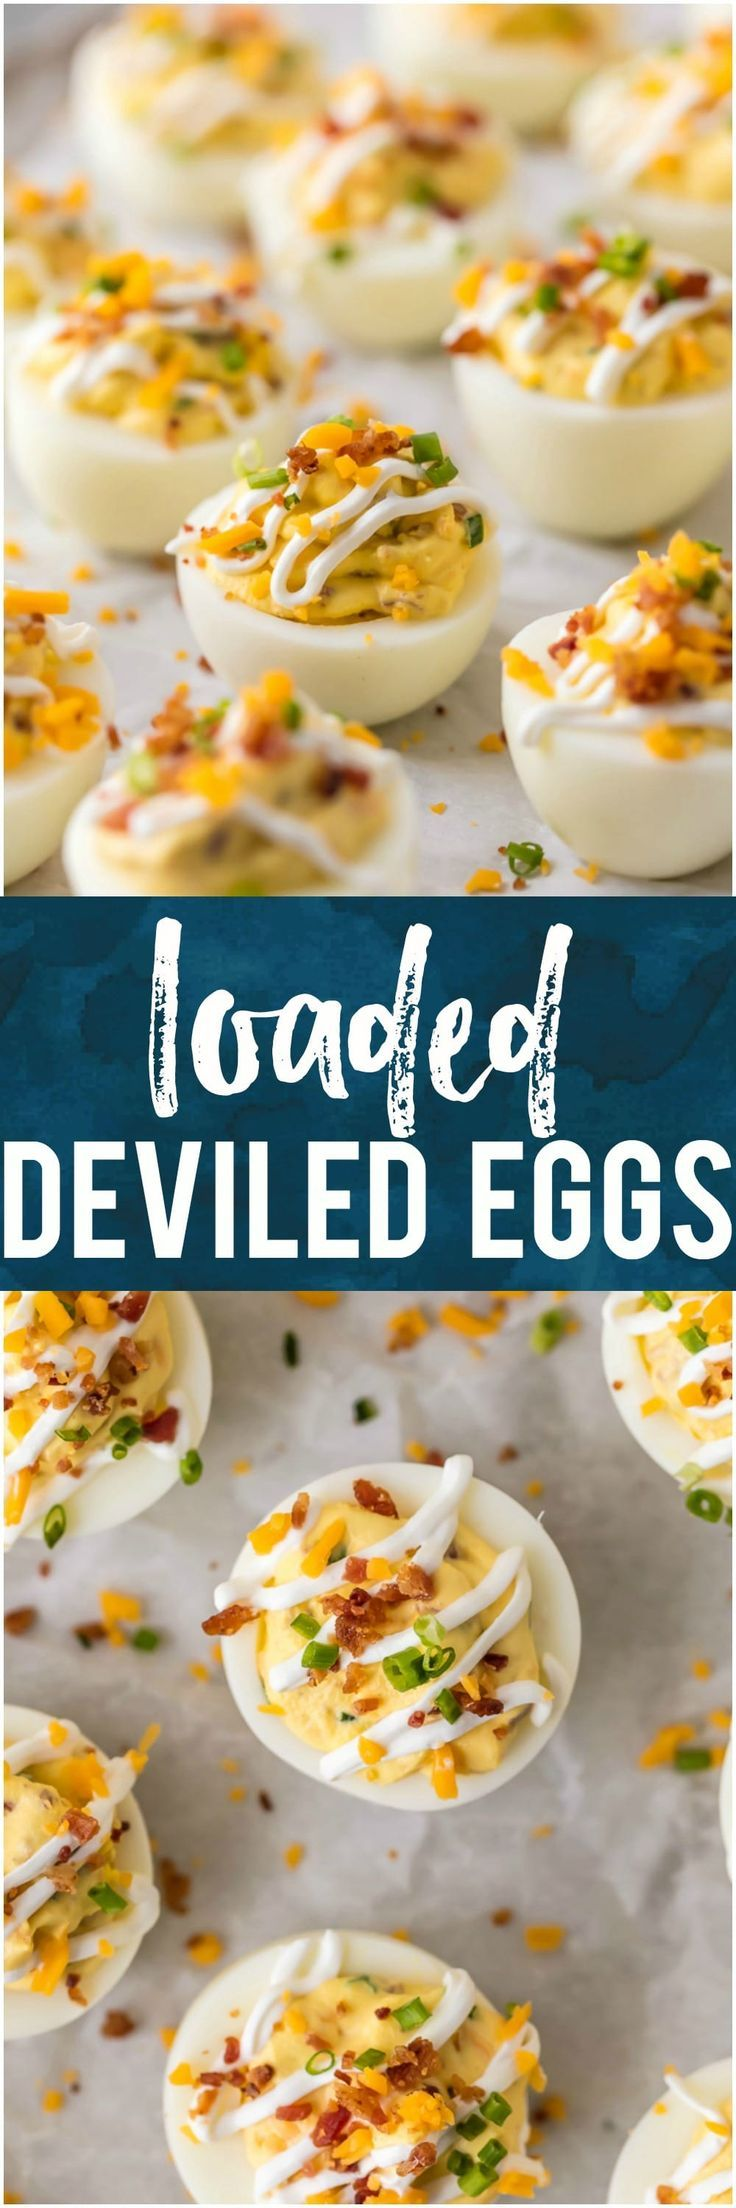 Deviled Egg Recipe Loaded Just Like A Loaded Baked Potato Smothered In A Mixture Of Devilled Eggs Recipe Best Deviled Eggs Recipe Delicious Deviled Egg Recipe